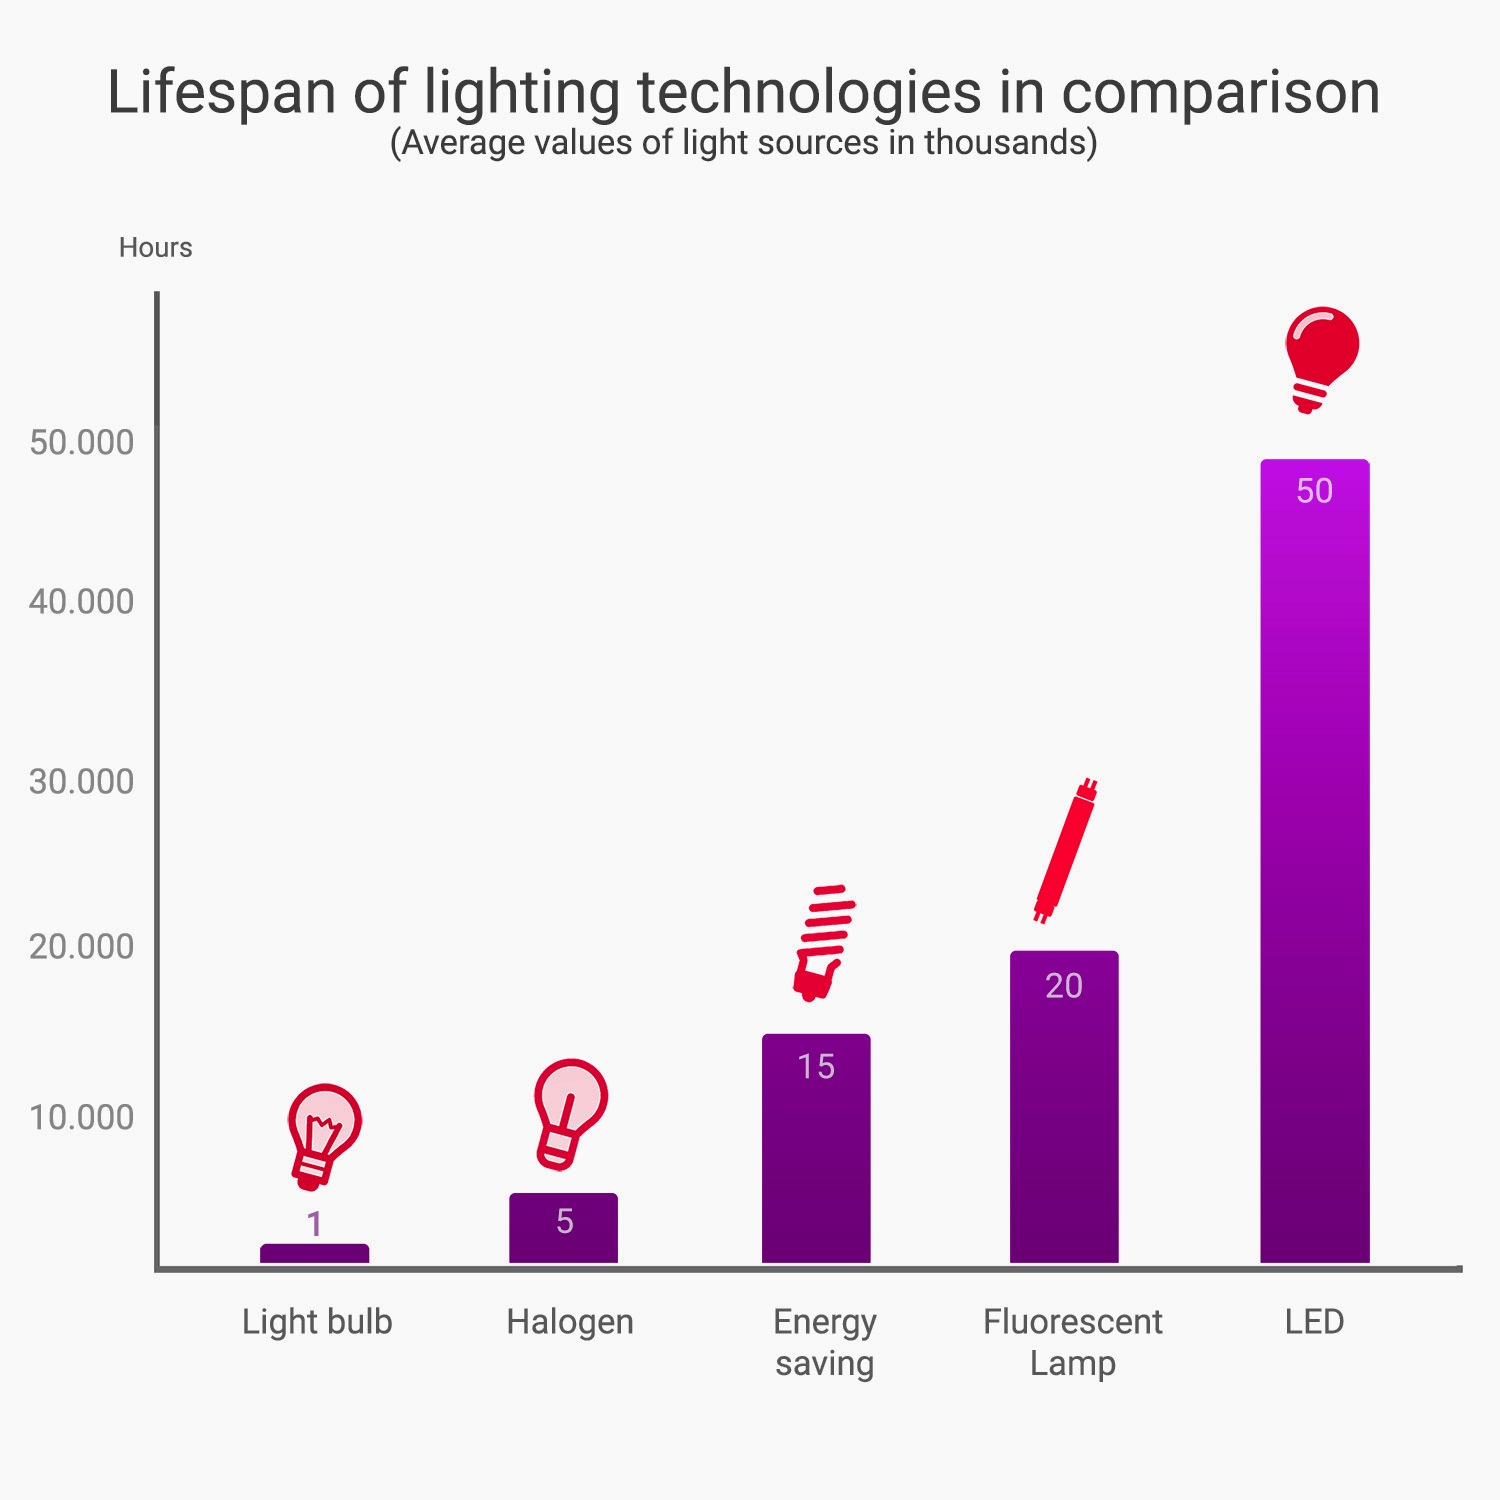 Bar Chart of Lifespan of different lighting technologies